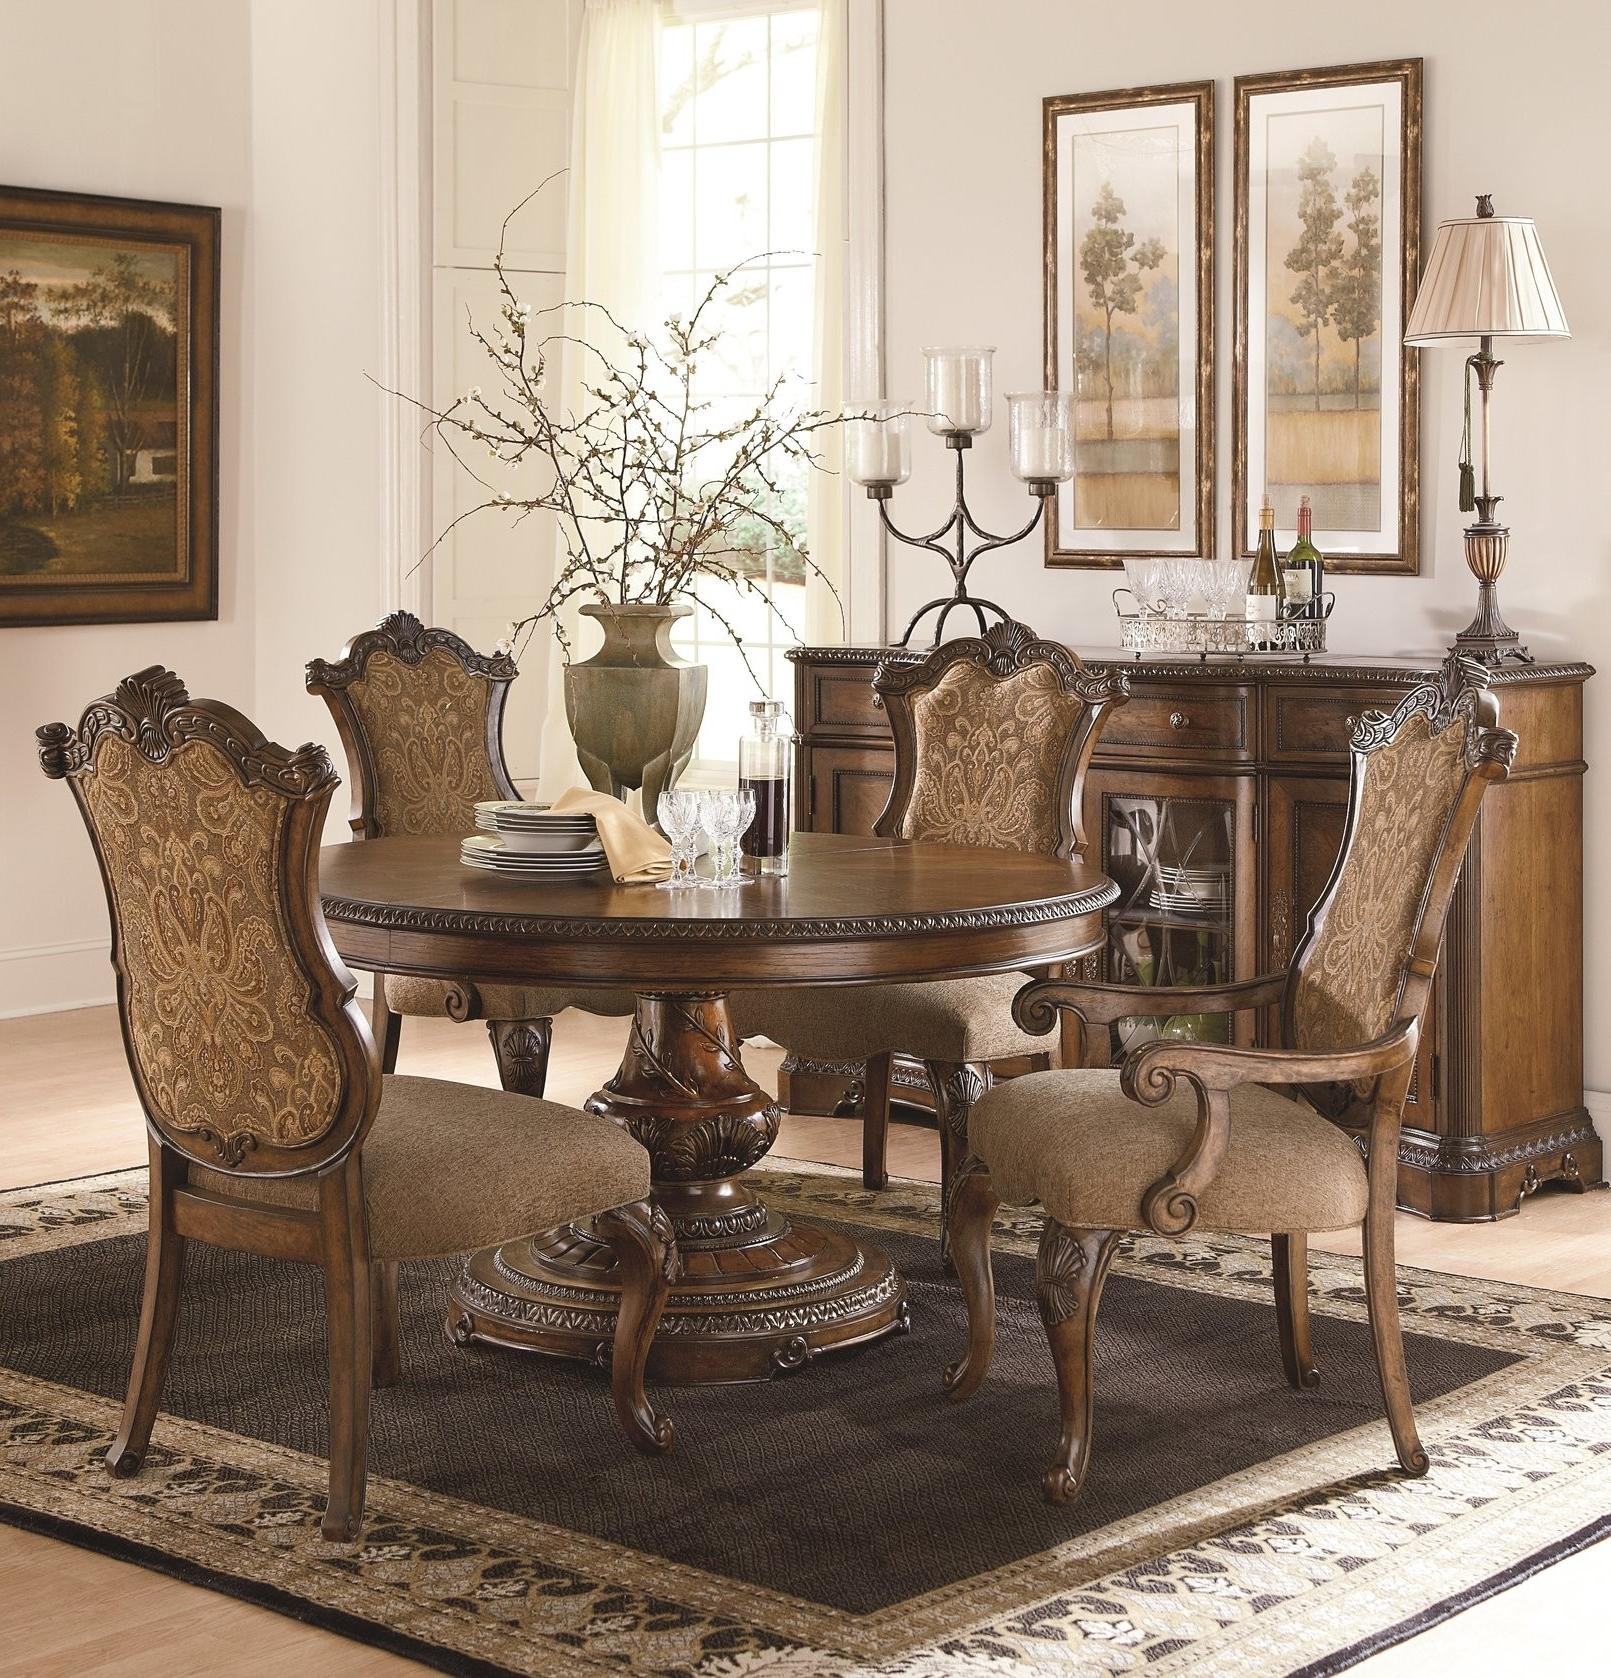 Well Liked Jaxon 6 Piece Rectangle Dining Sets With Bench & Uph Chairs For Dining Table Upholstered Chairs Unique The Pemberleigh Round Table (View 16 of 25)